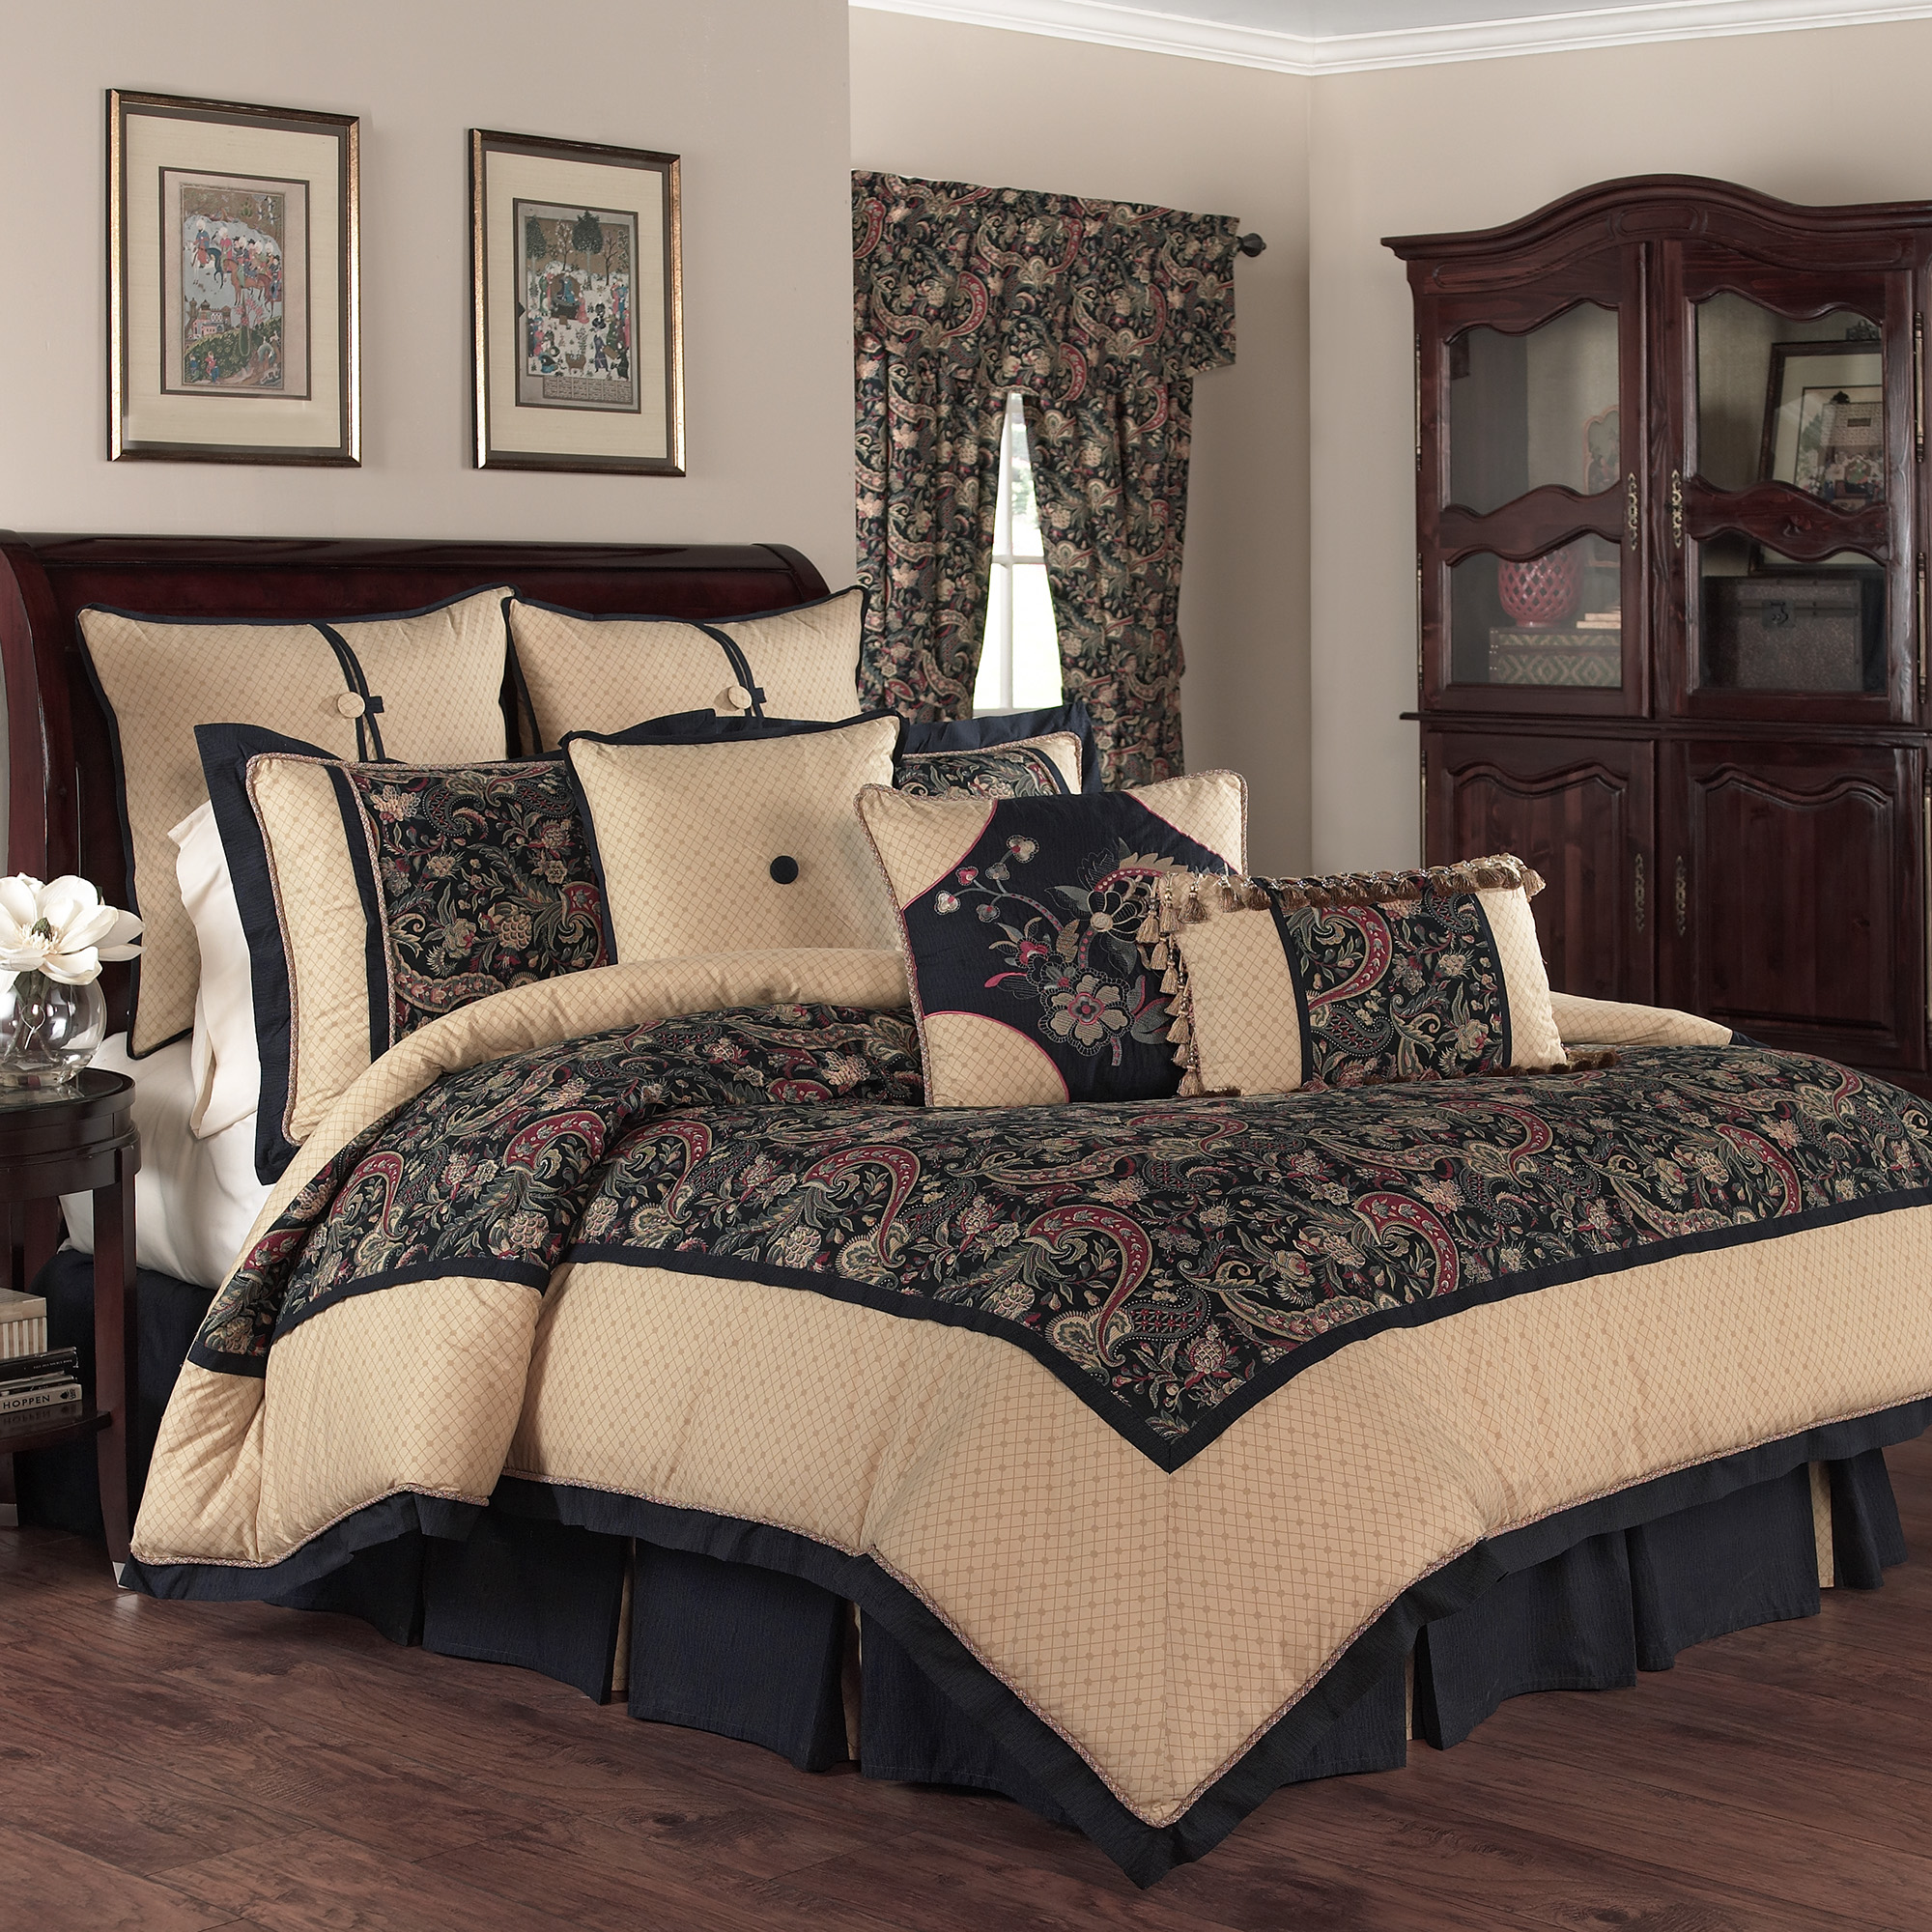 Waverly Rhapsody 4-Piece Bedding Collection